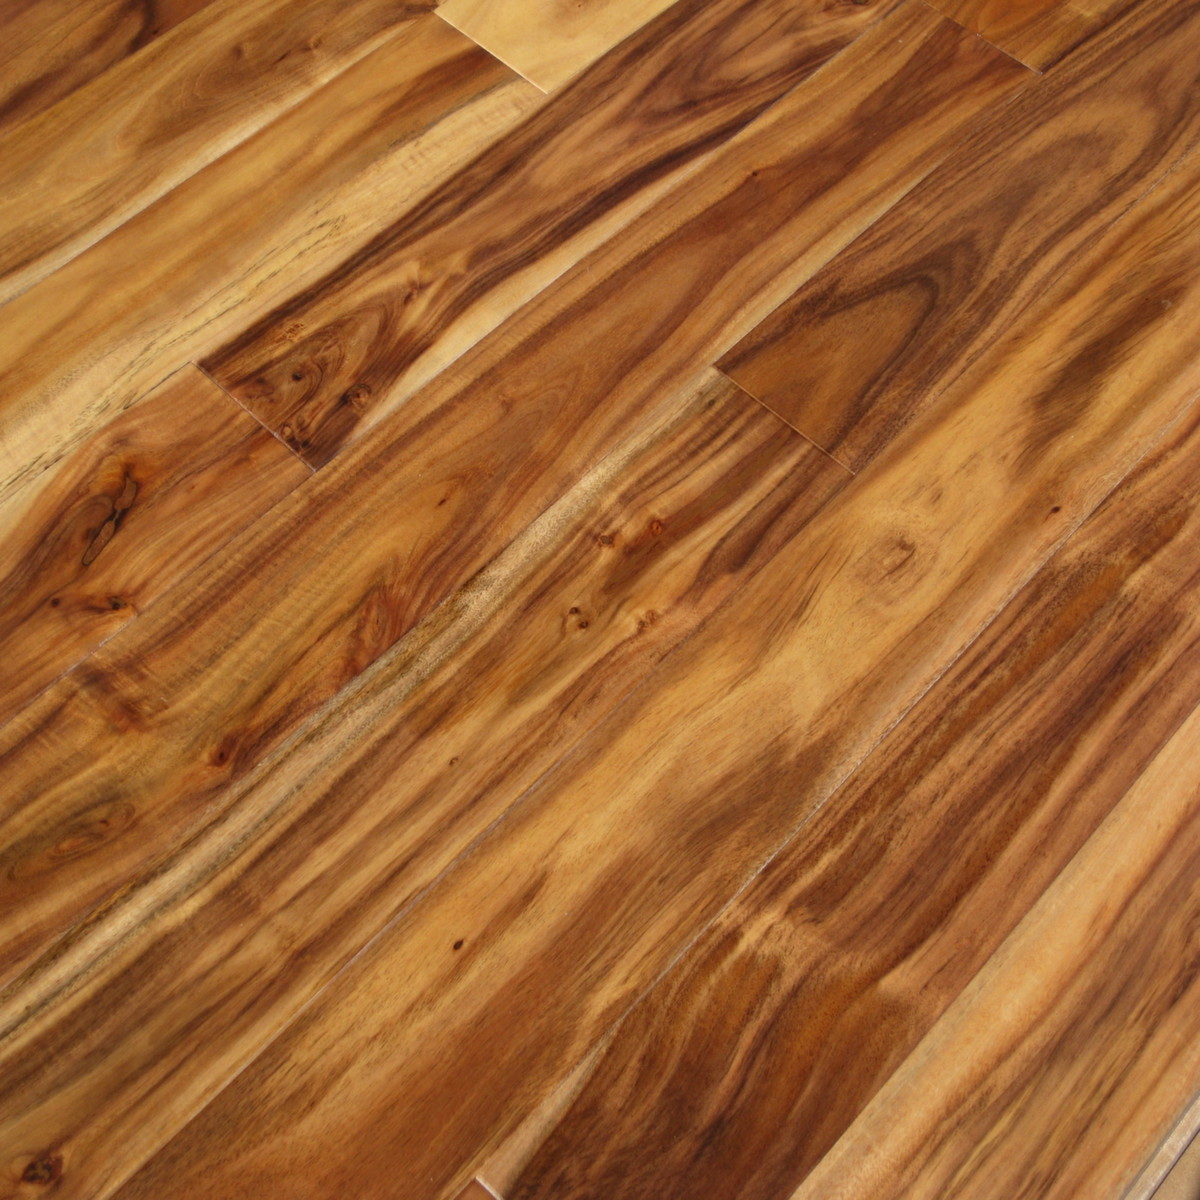 Acacia natural hand scraped hardwood flooring acacia for Hand scraped wood floors